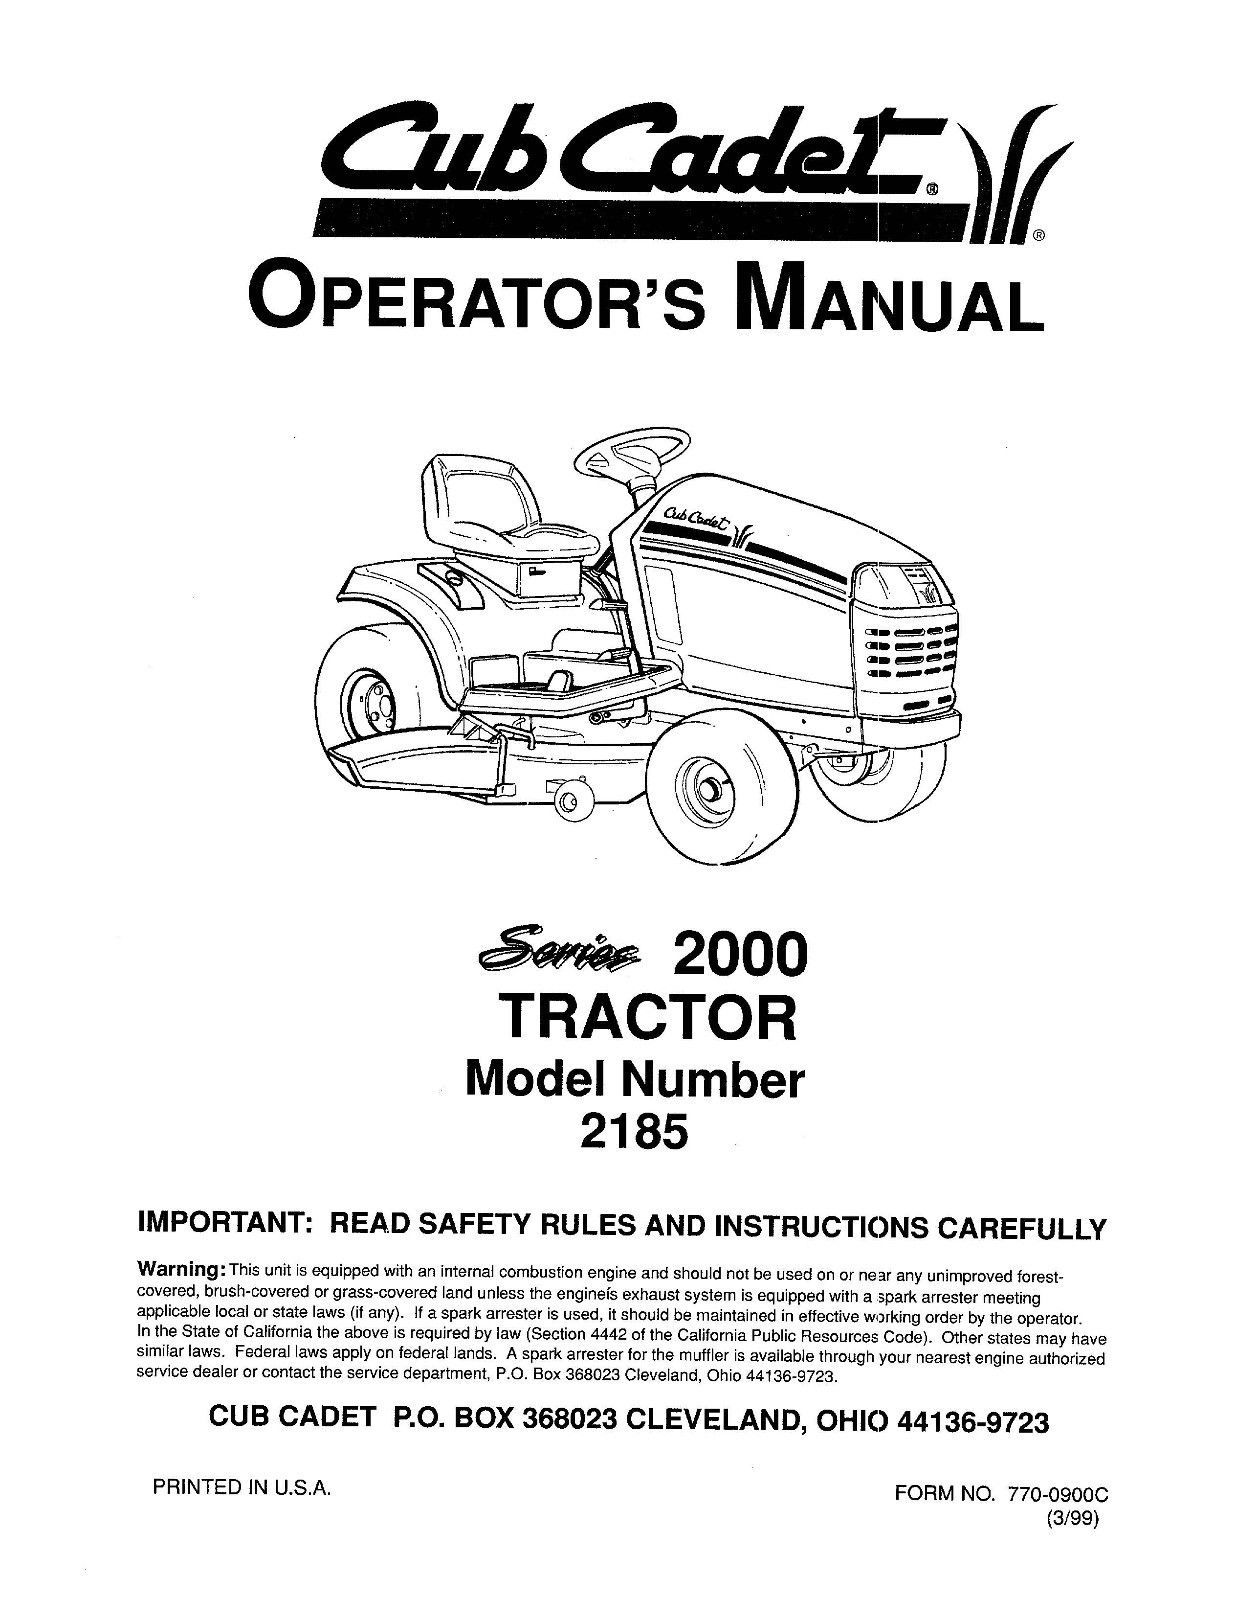 Cub Cadet Lawn Tractor Operator's Manual Model No. 2185